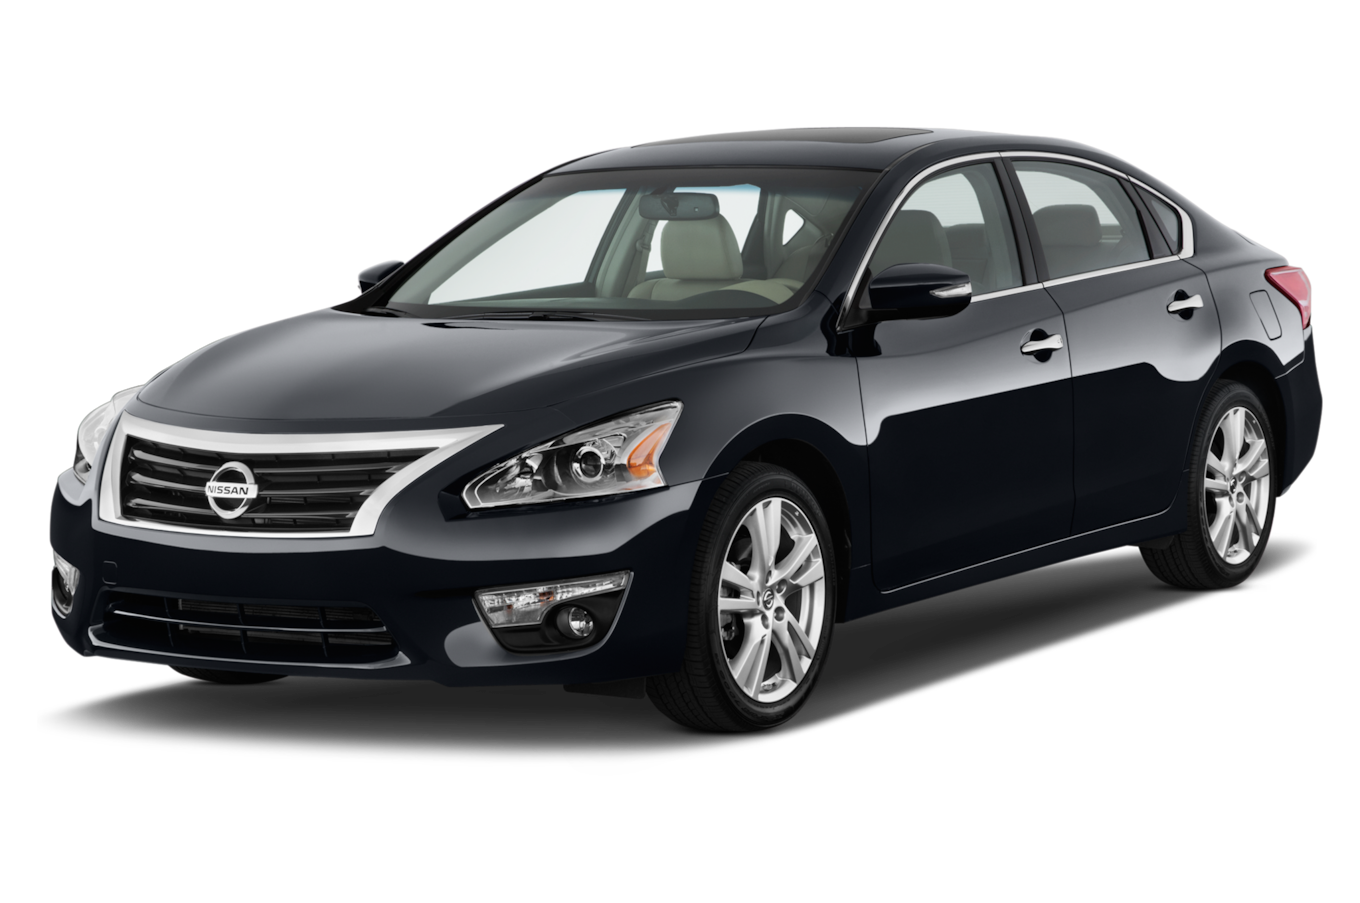 71 All New 2015 Nissan Altima 2 5 Pictures for 2015 Nissan Altima 2 5